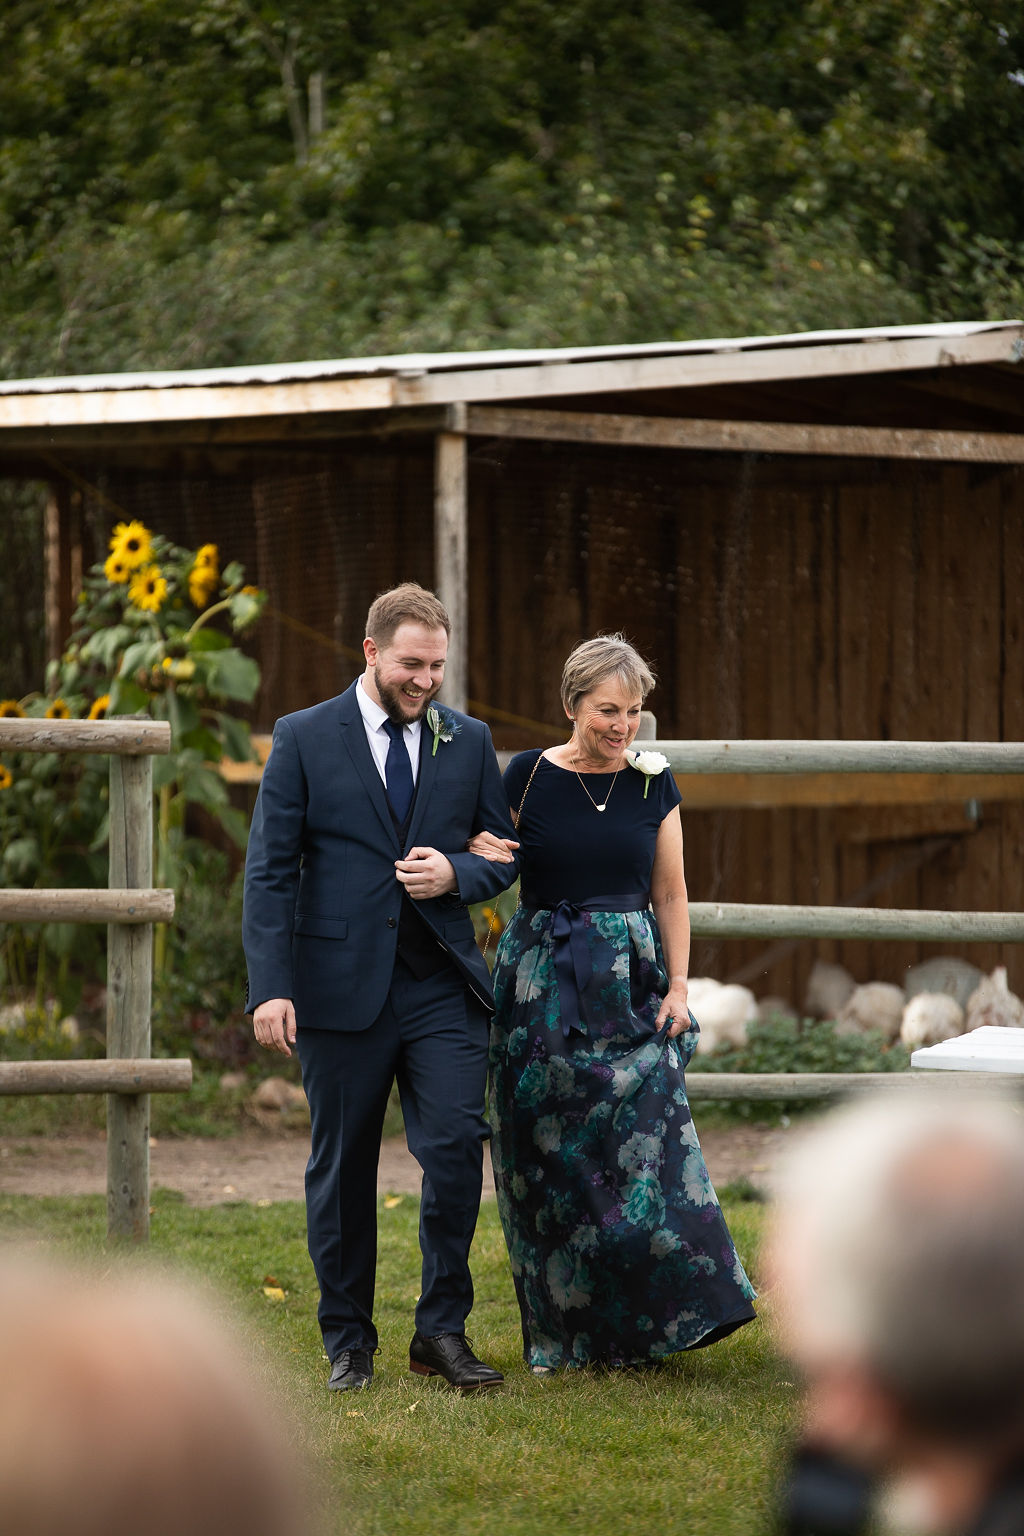 groom and his mom walk down the aisle of this outdoor farm wedding ceremony. www.thegathered.ca